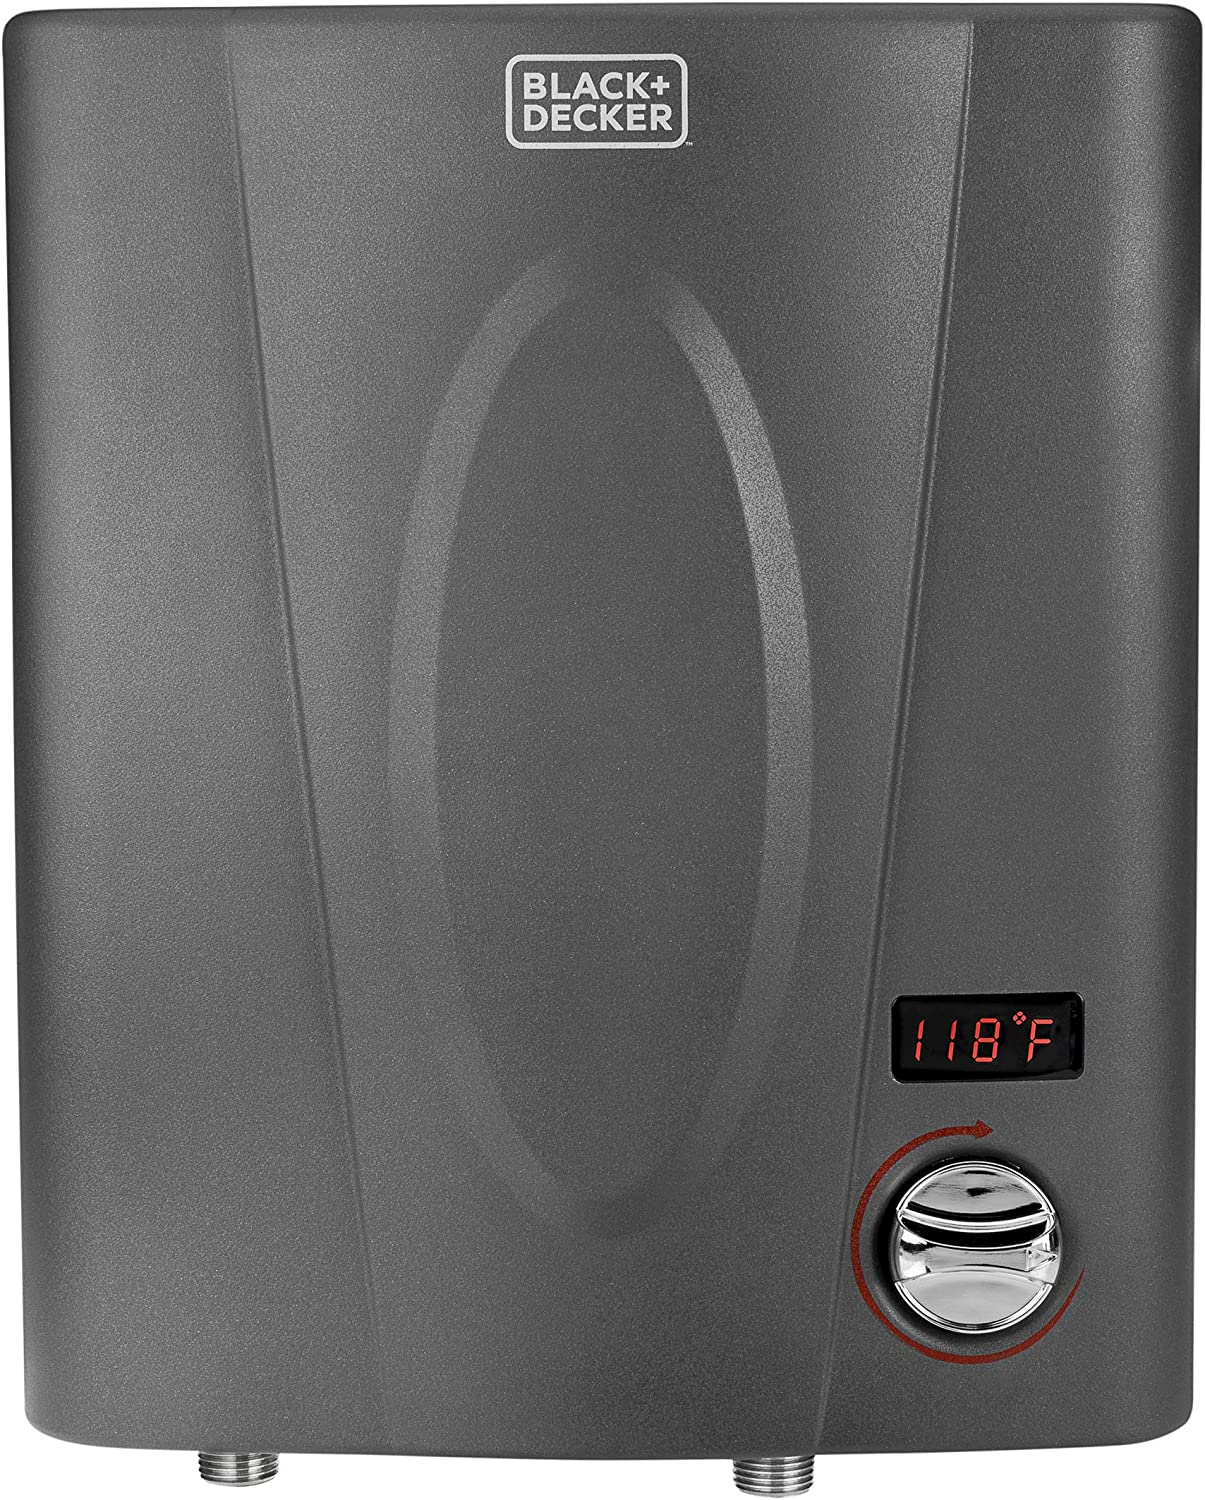 BLACK + DECKER 7kW Self-Modulating 1.5 GPM Electric Tankless Water Heater, Point of Use hot water heater electric